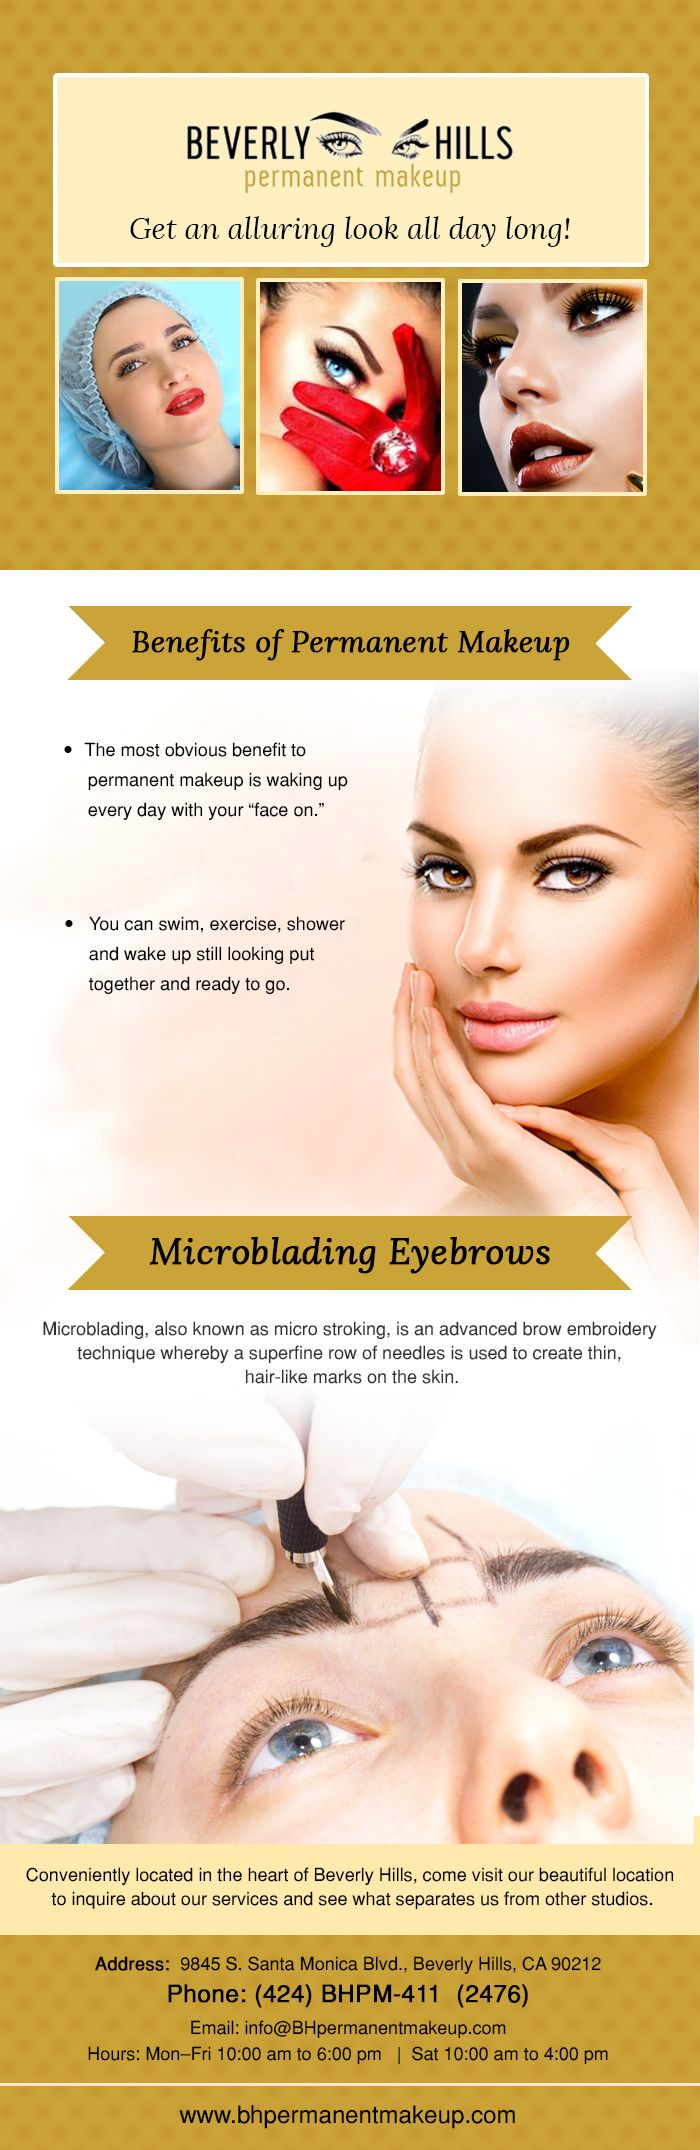 Microblading is the preeminent solution for the ones who want to reshape their eyebrows. Add an artistic touch to your brows with microblading eyebrows.